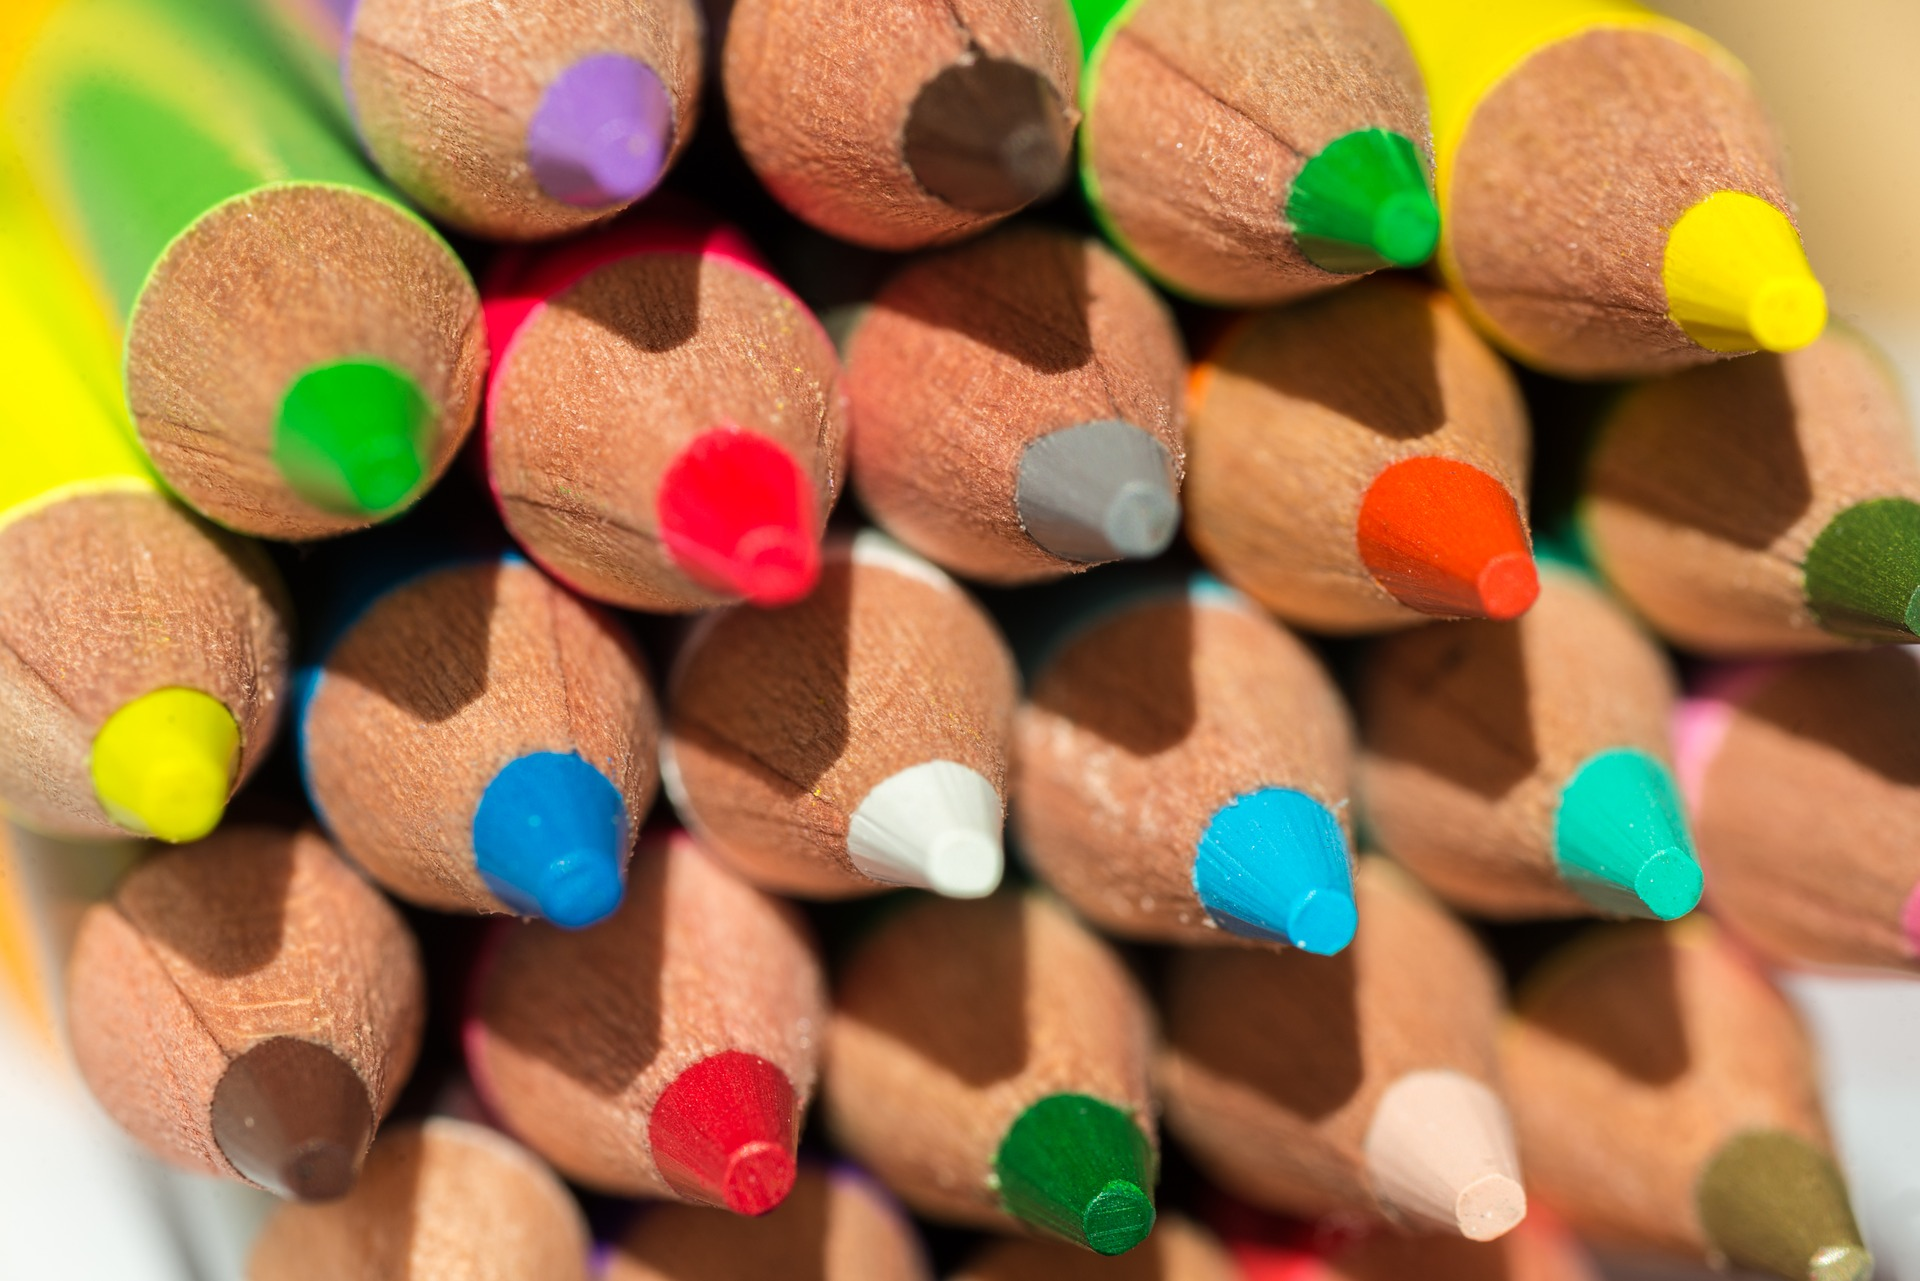 colored-pencils-3869241_1920.jpg